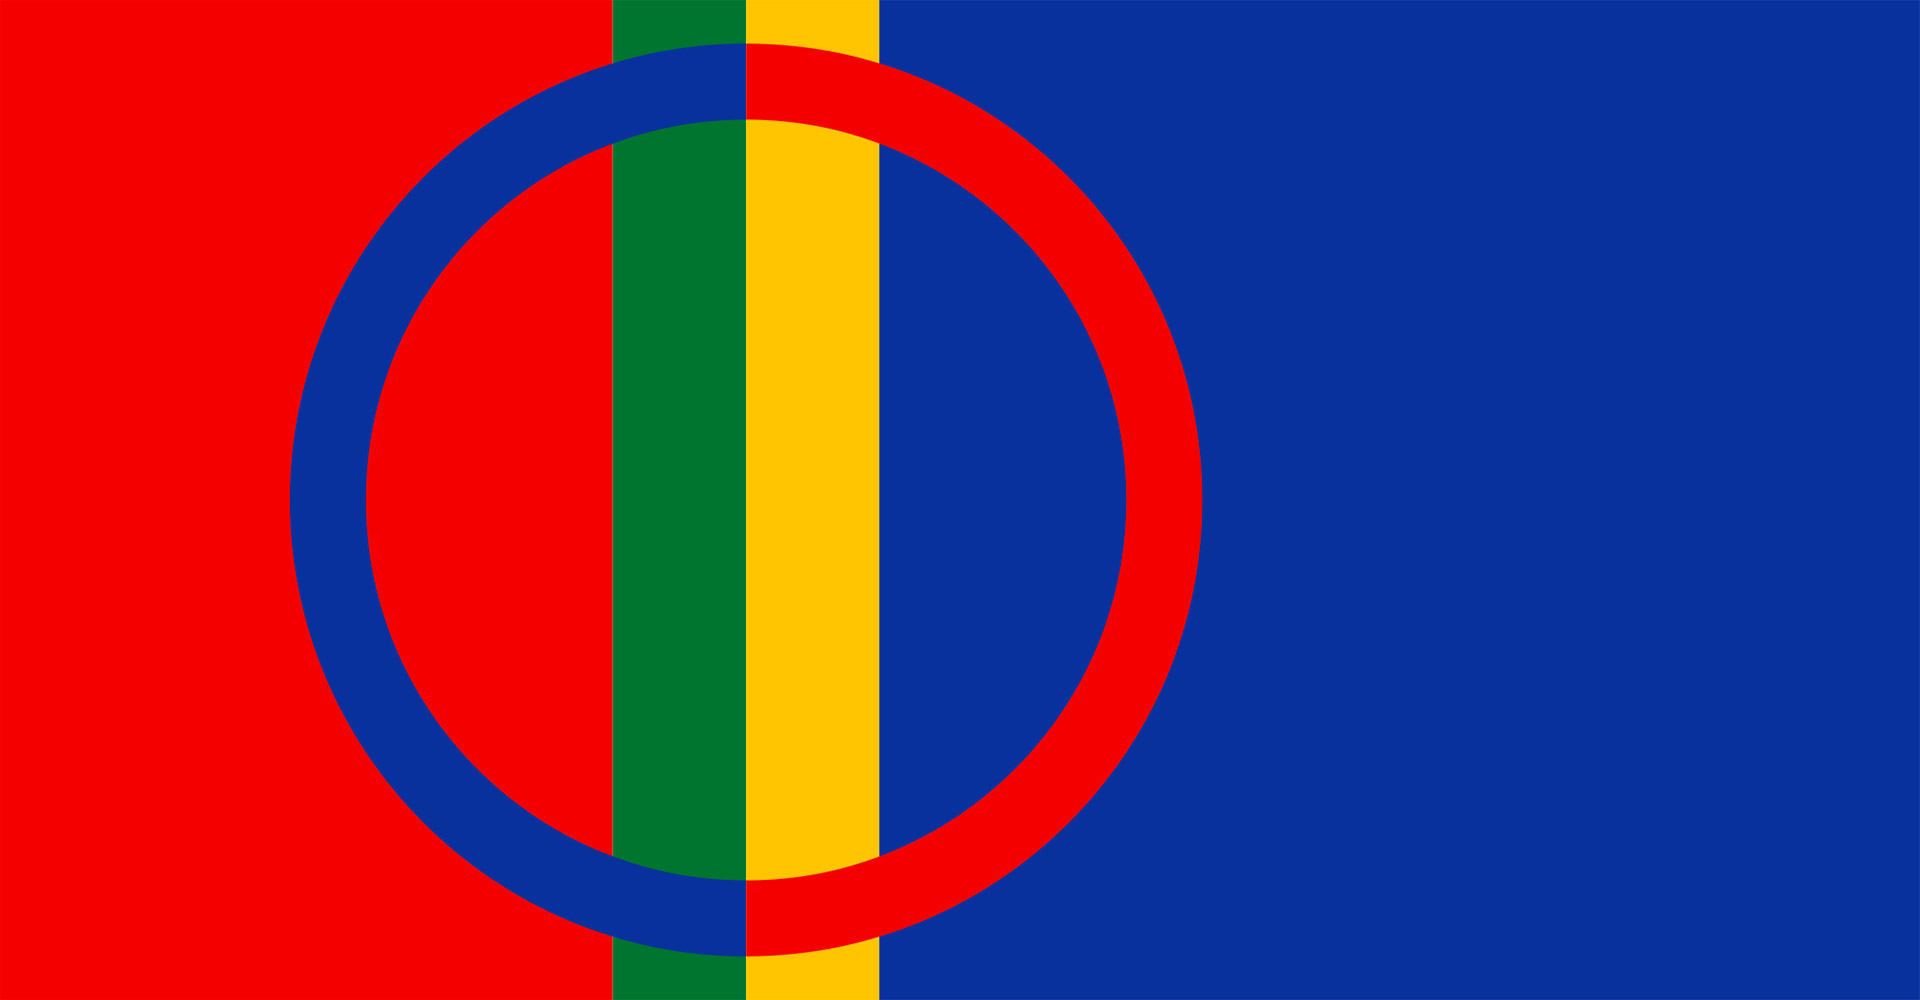 Indigenous peoples in Sápmi